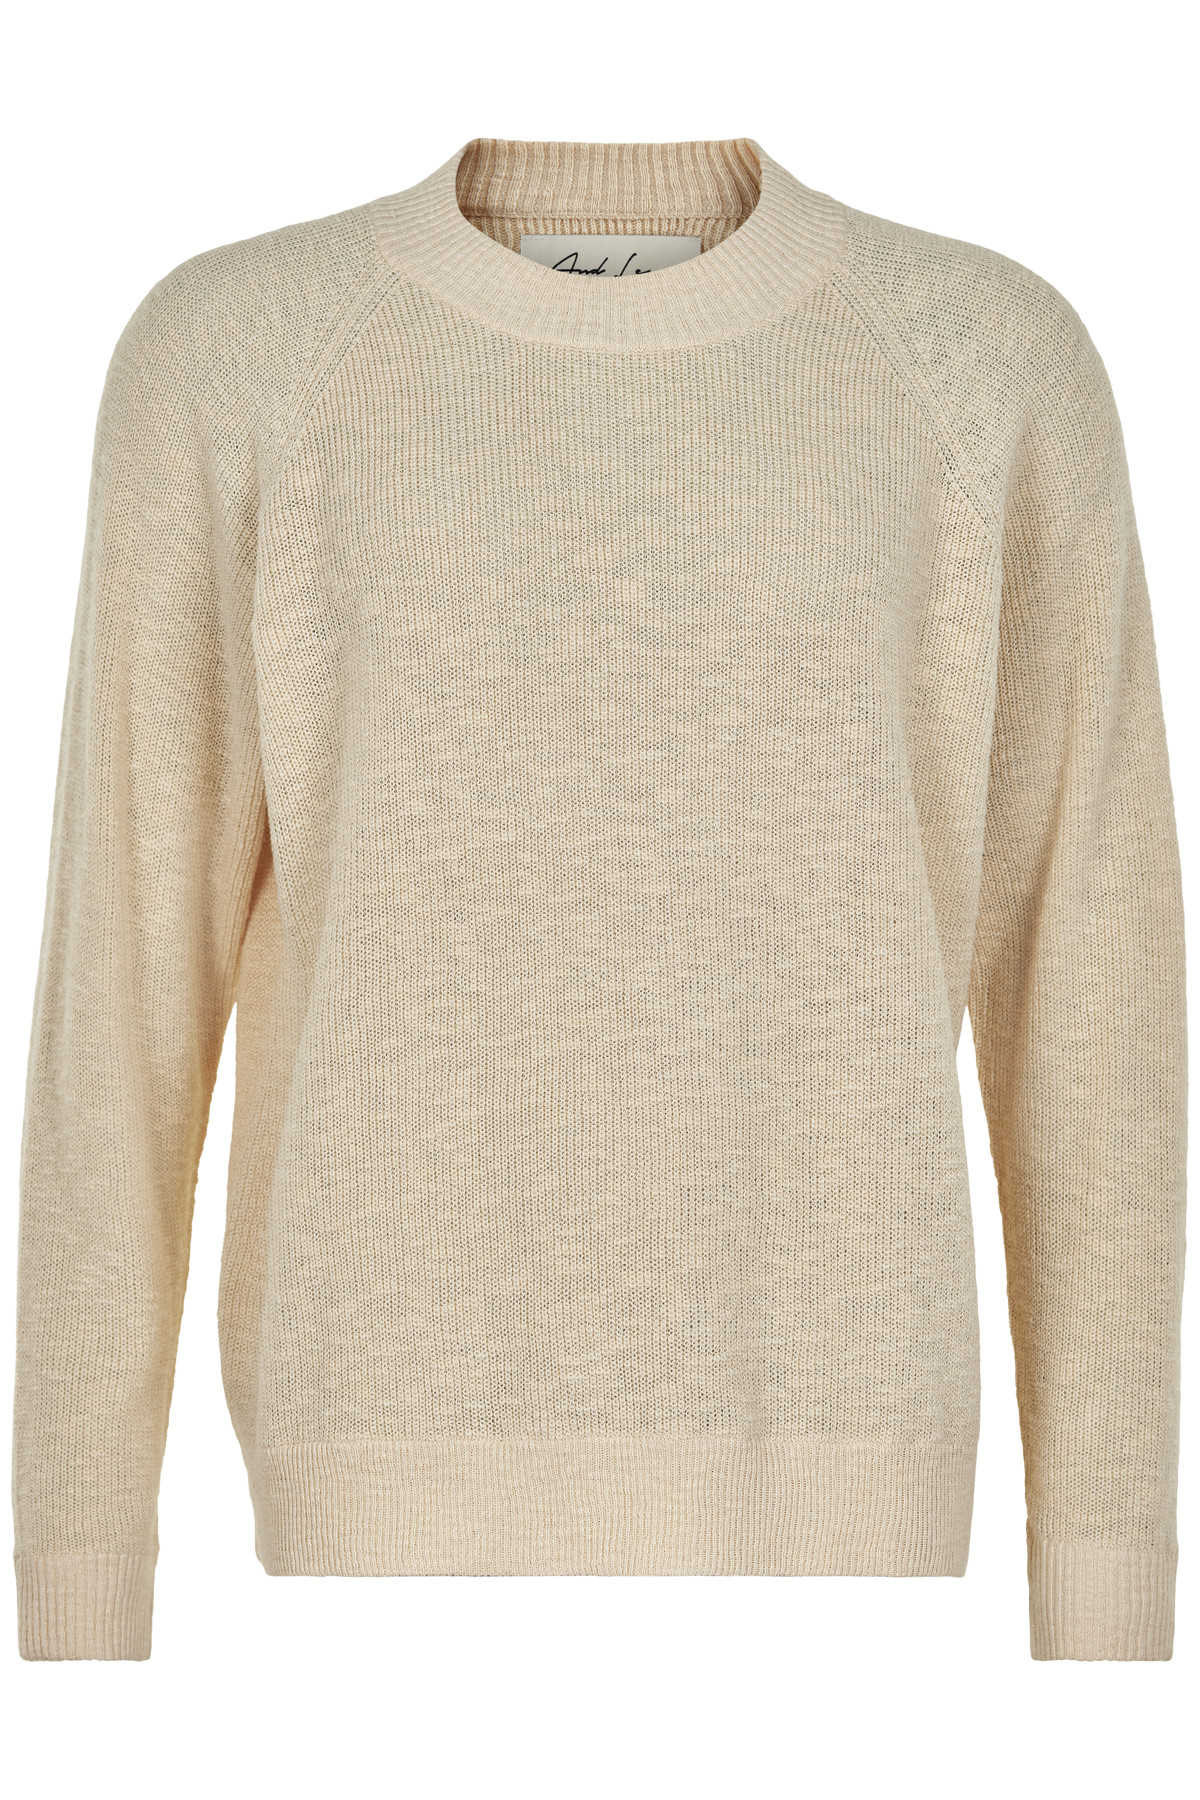 Image of   AND LESS ALBAMBINA PULLOVER 5220201 9504 (Birch, XL)